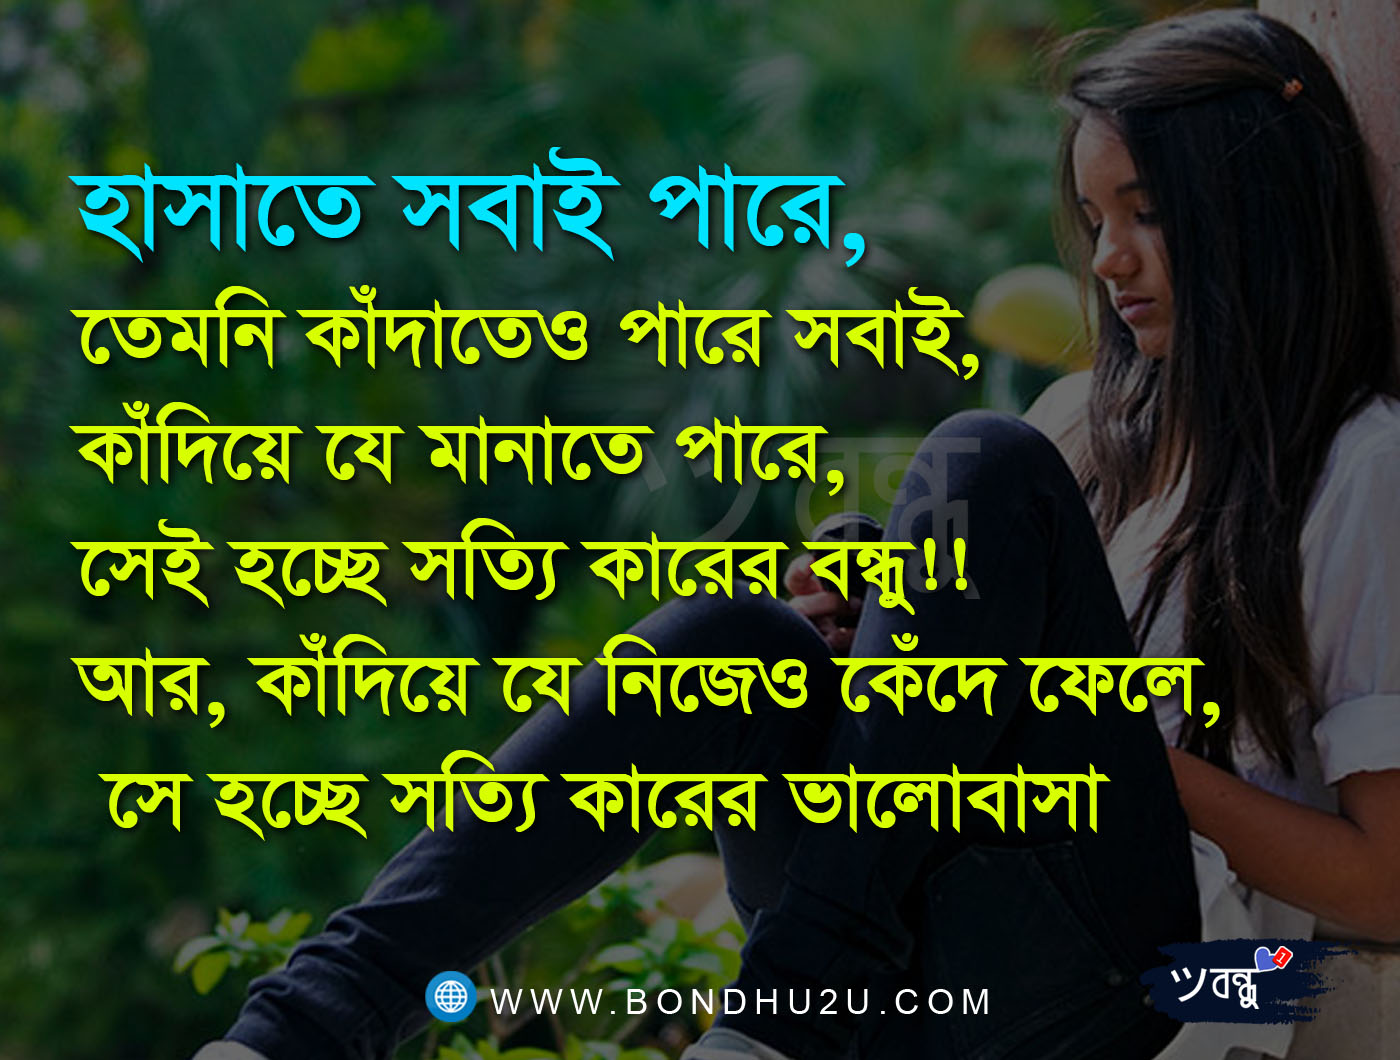 Bangla Funny Love Wallpaper : Best Bangla Love SMS - Hot Romantic Bangla Kobita Love Images SMS - bengali writing wallpaper ...